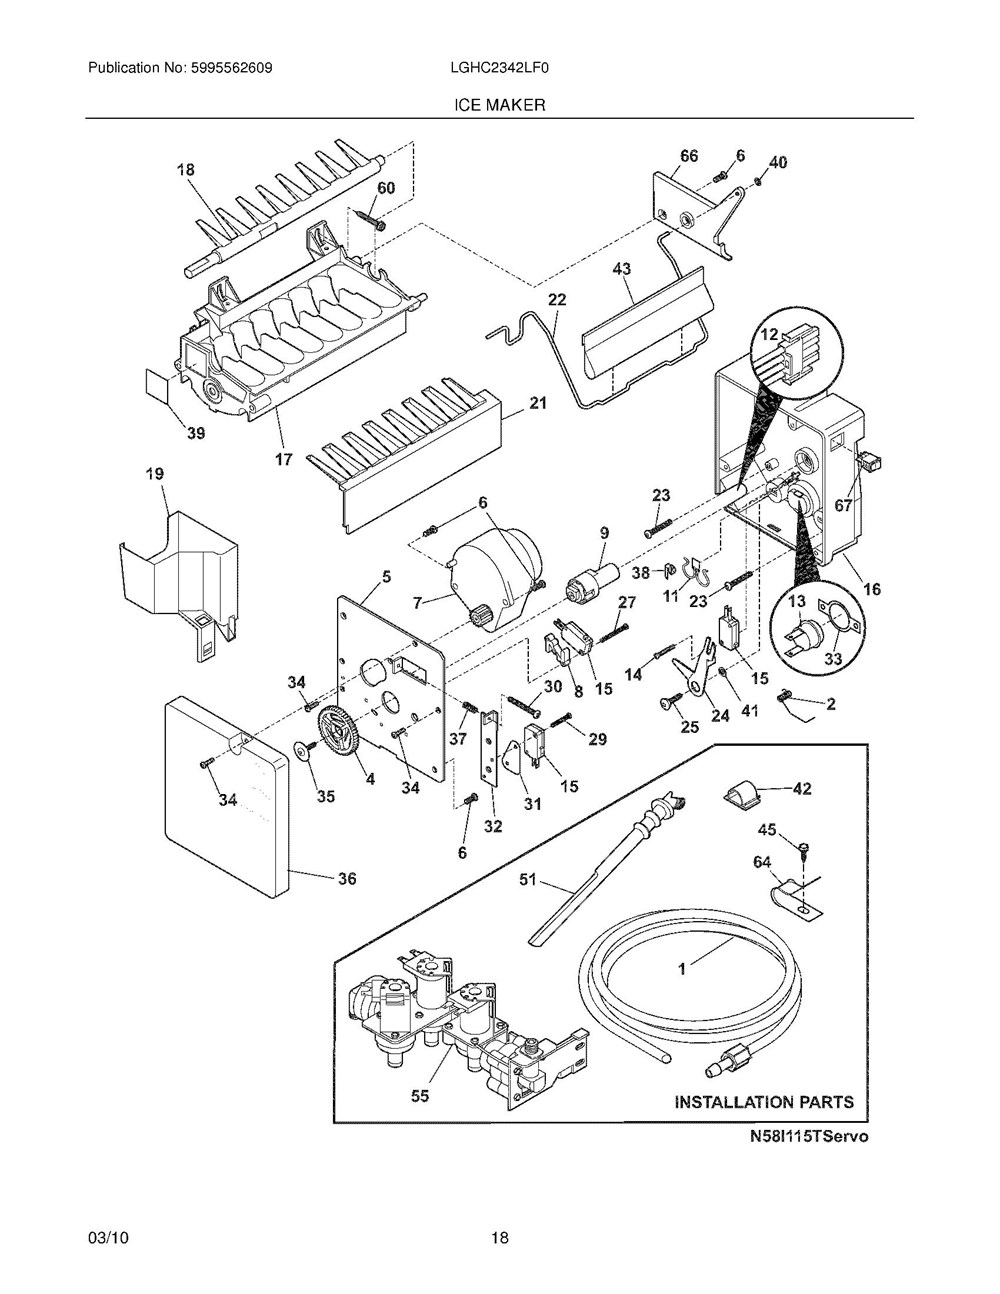 harley davidson radio wiring harness diagram harley harley davidson radio wiring harness diagram jodebal com on harley davidson radio wiring harness diagram